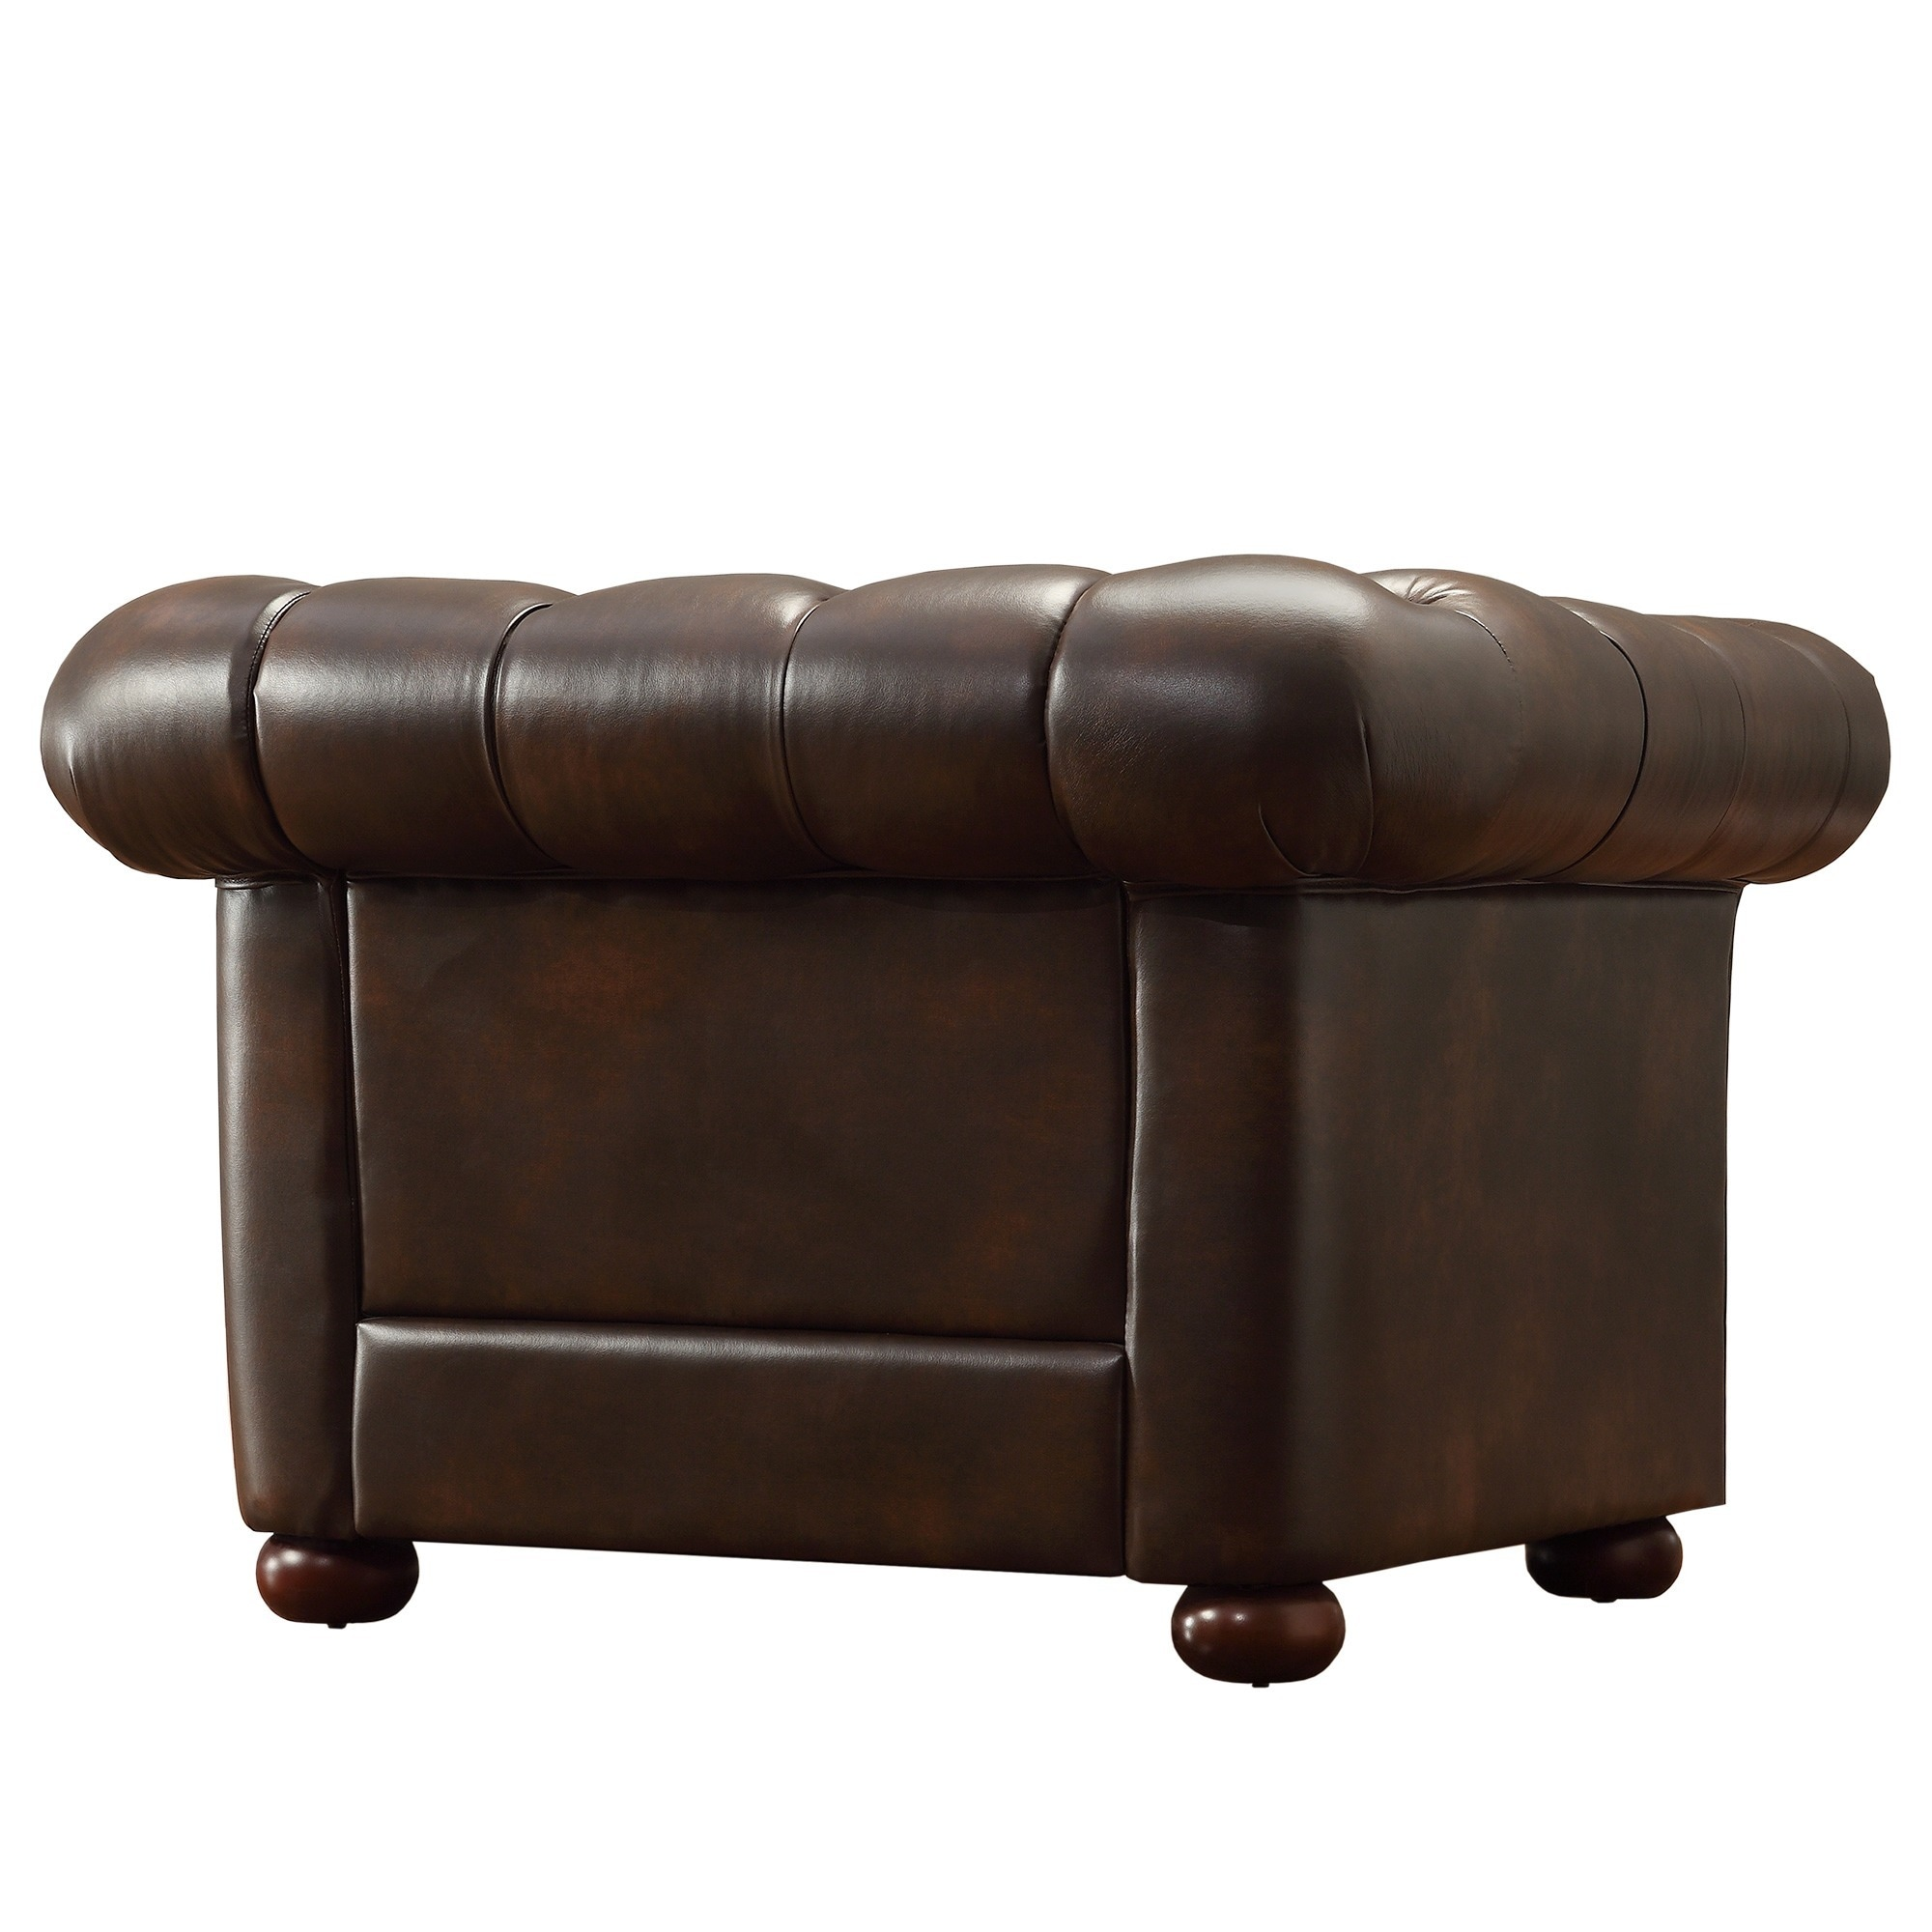 Bon Shop Knightsbridge Brown Bonded Leather Tufted Scroll Arm Chesterfield Chair  By INSPIRE Q Artisan   On Sale   Free Shipping Today   Overstock.com    9497908